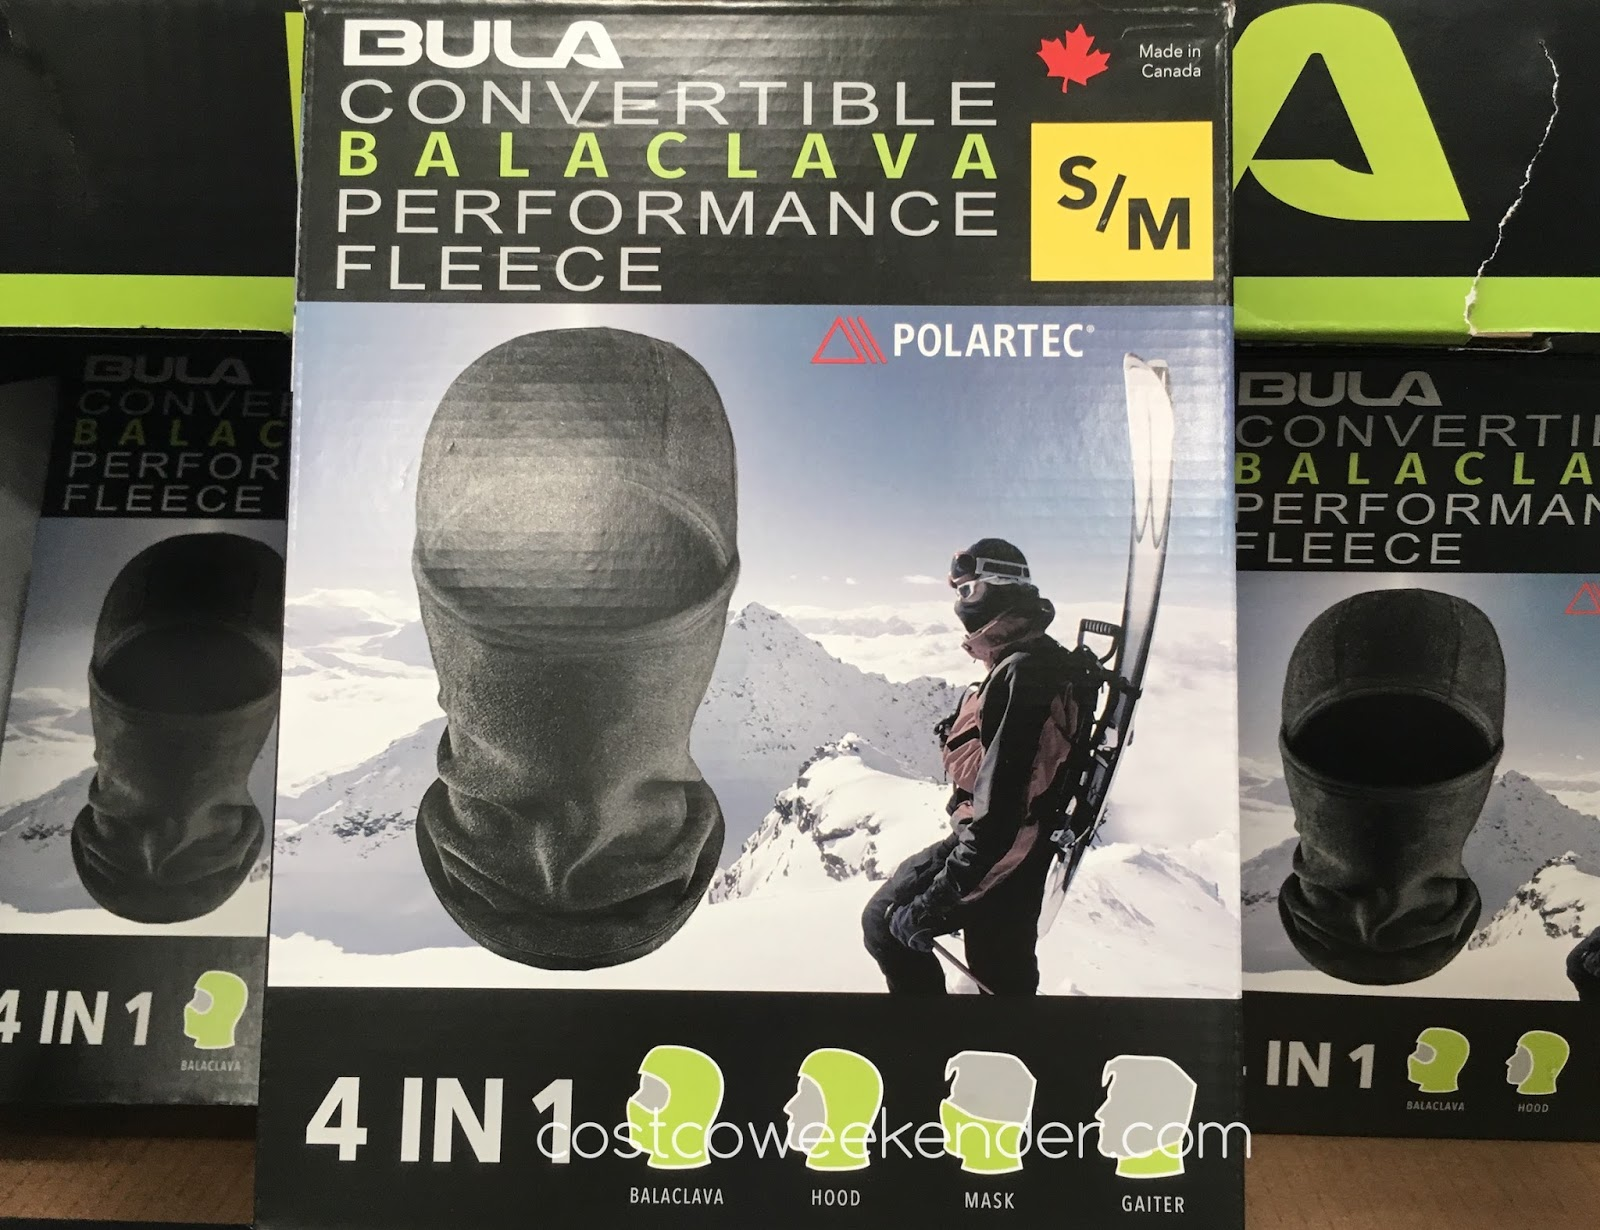 Stay warm while in the outdoors with the Bula 4-in-1 Convertable Performance Fleece Balaclava